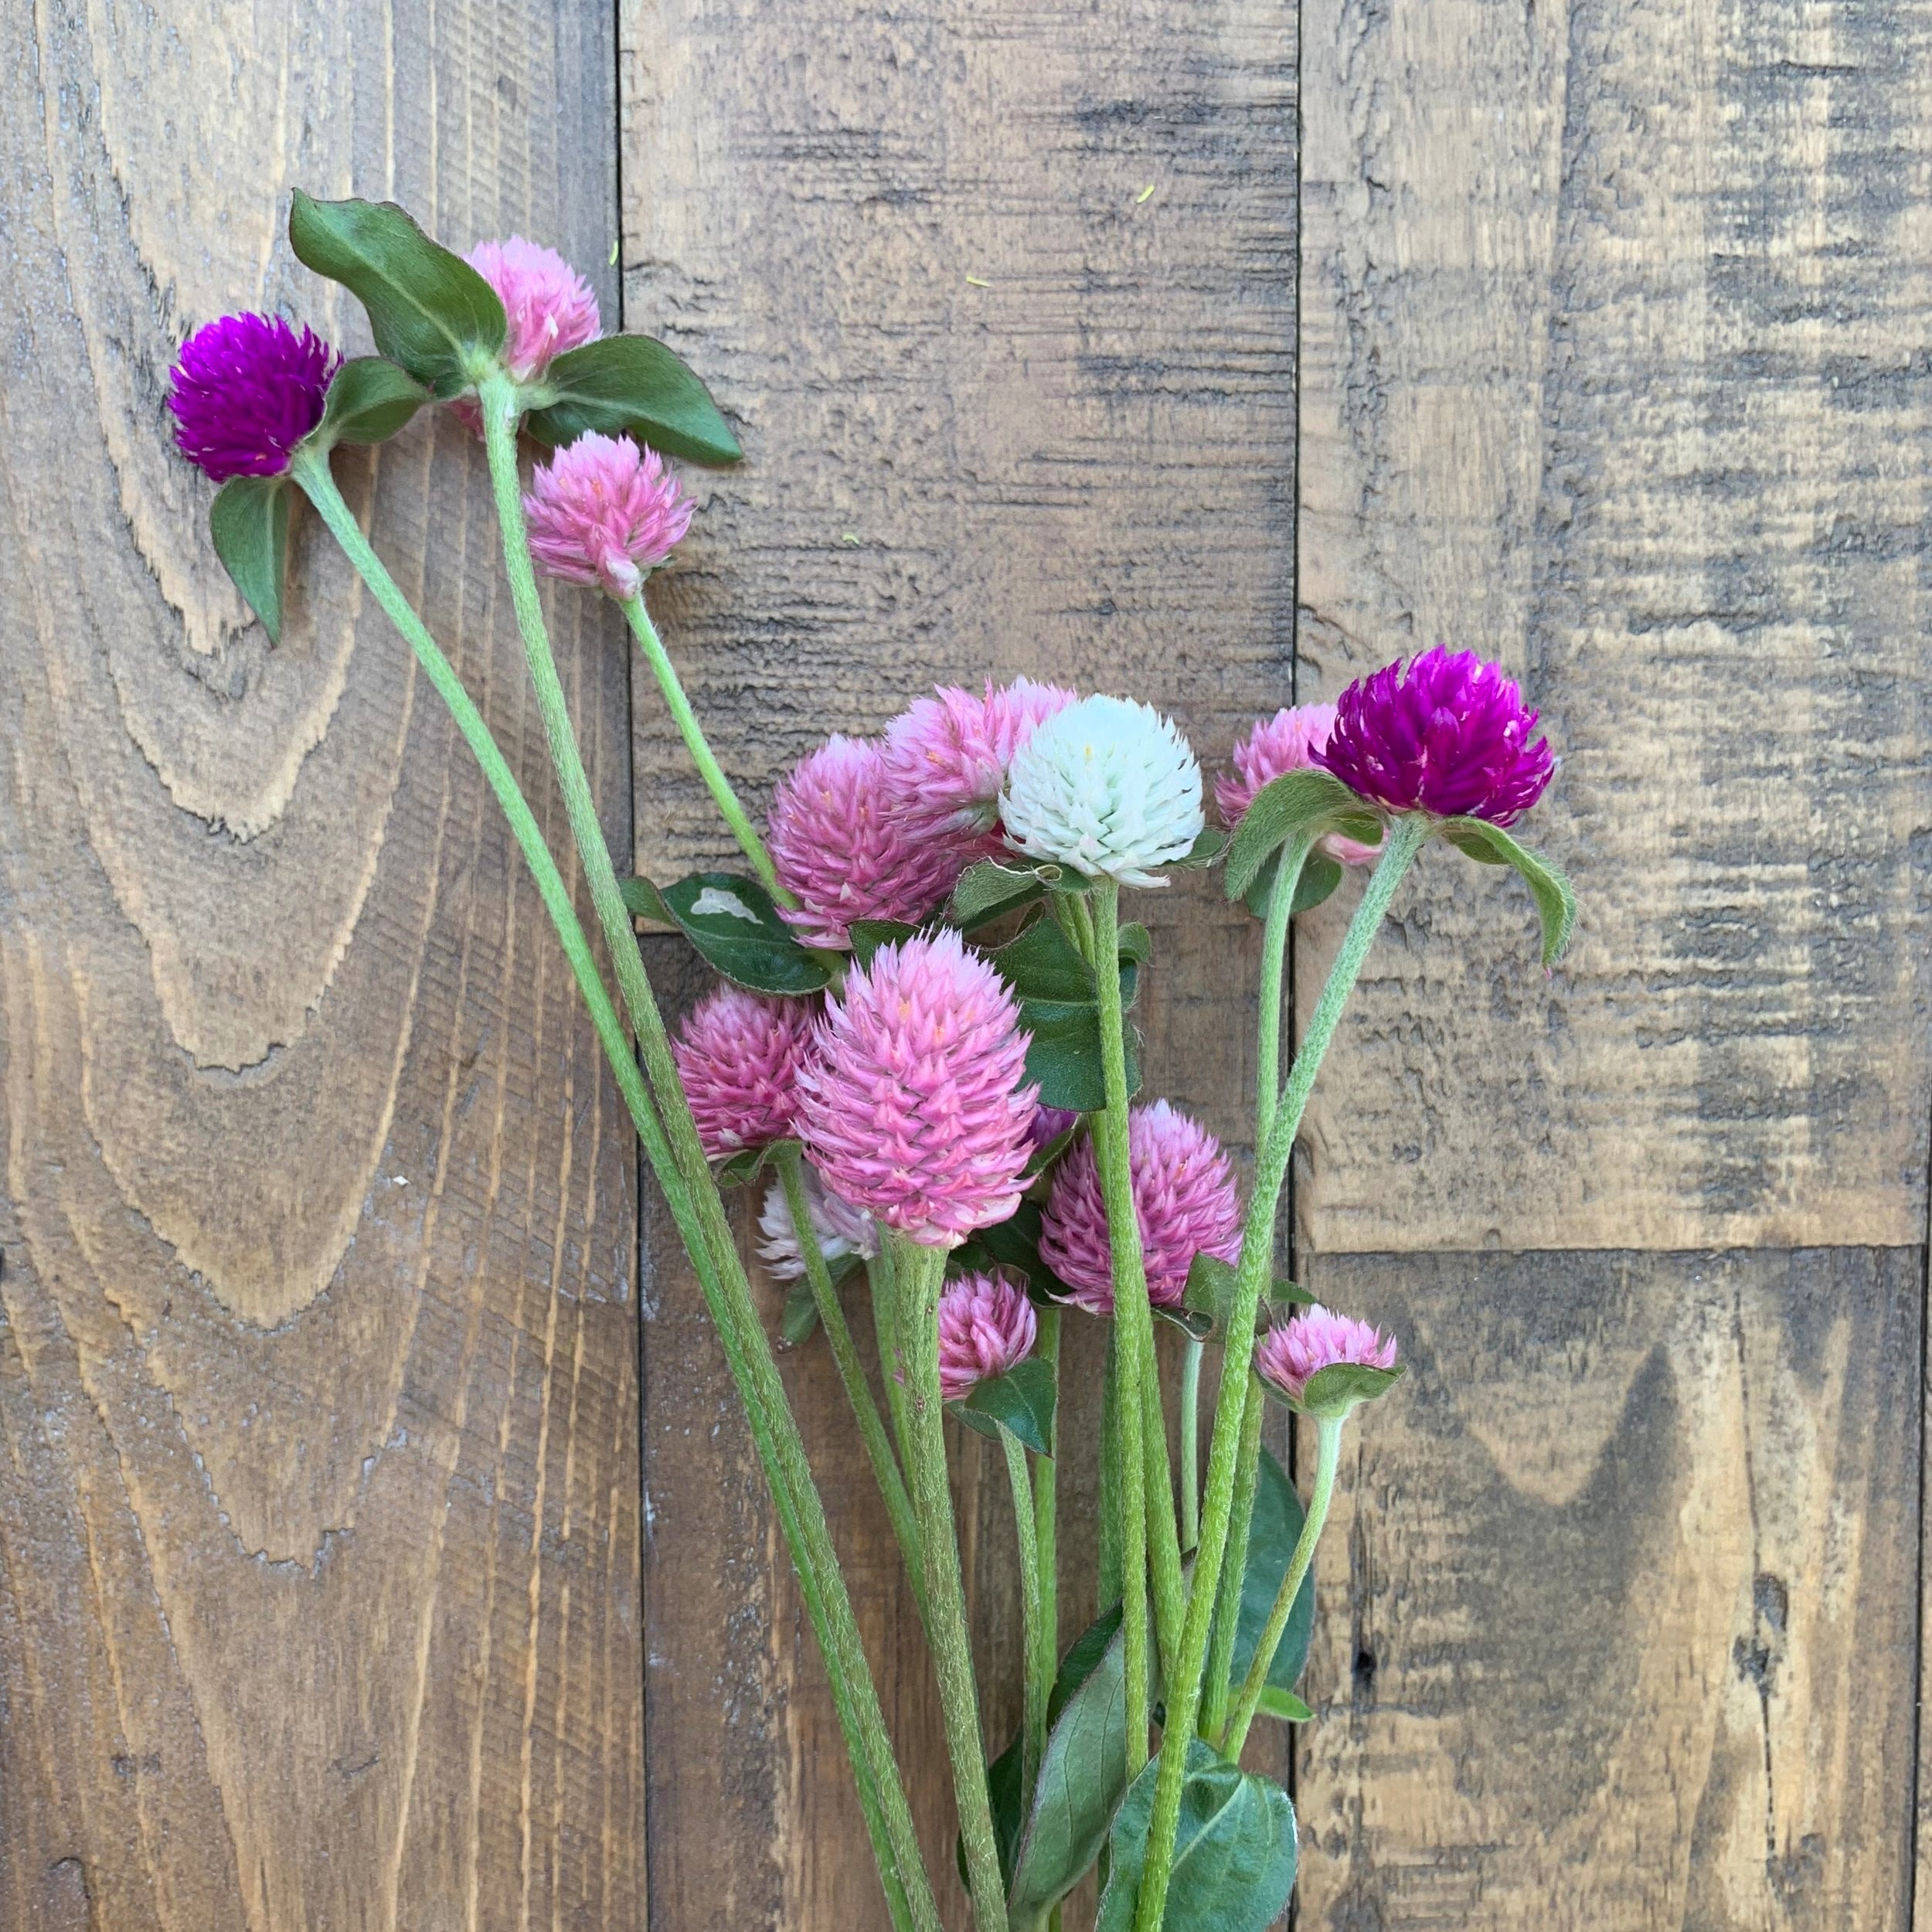 Gomphrena - Now available